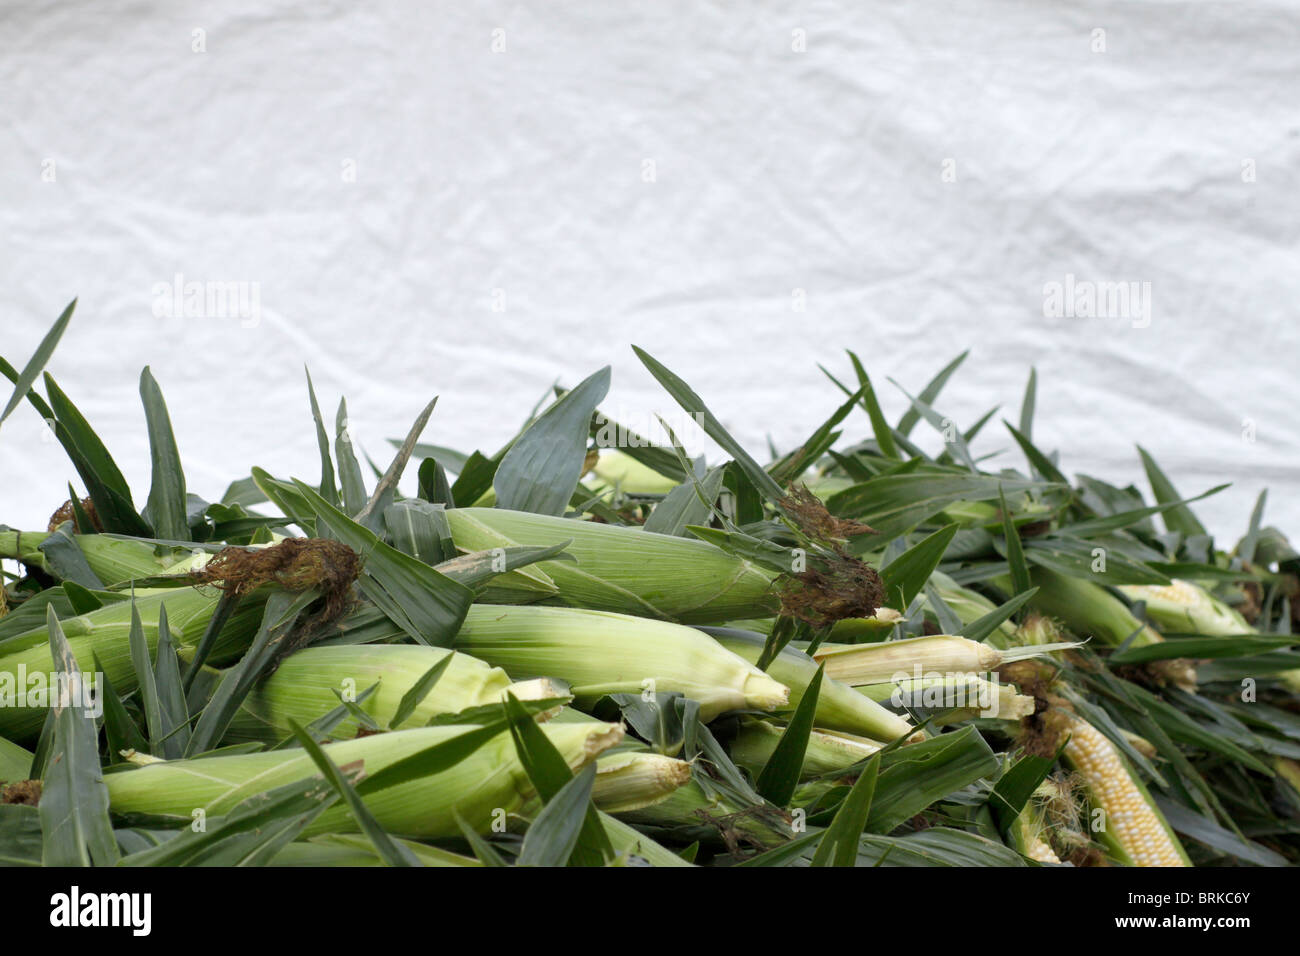 Ears of sweet corn piled high at farmers market in Cleveland Ohio - Stock Image